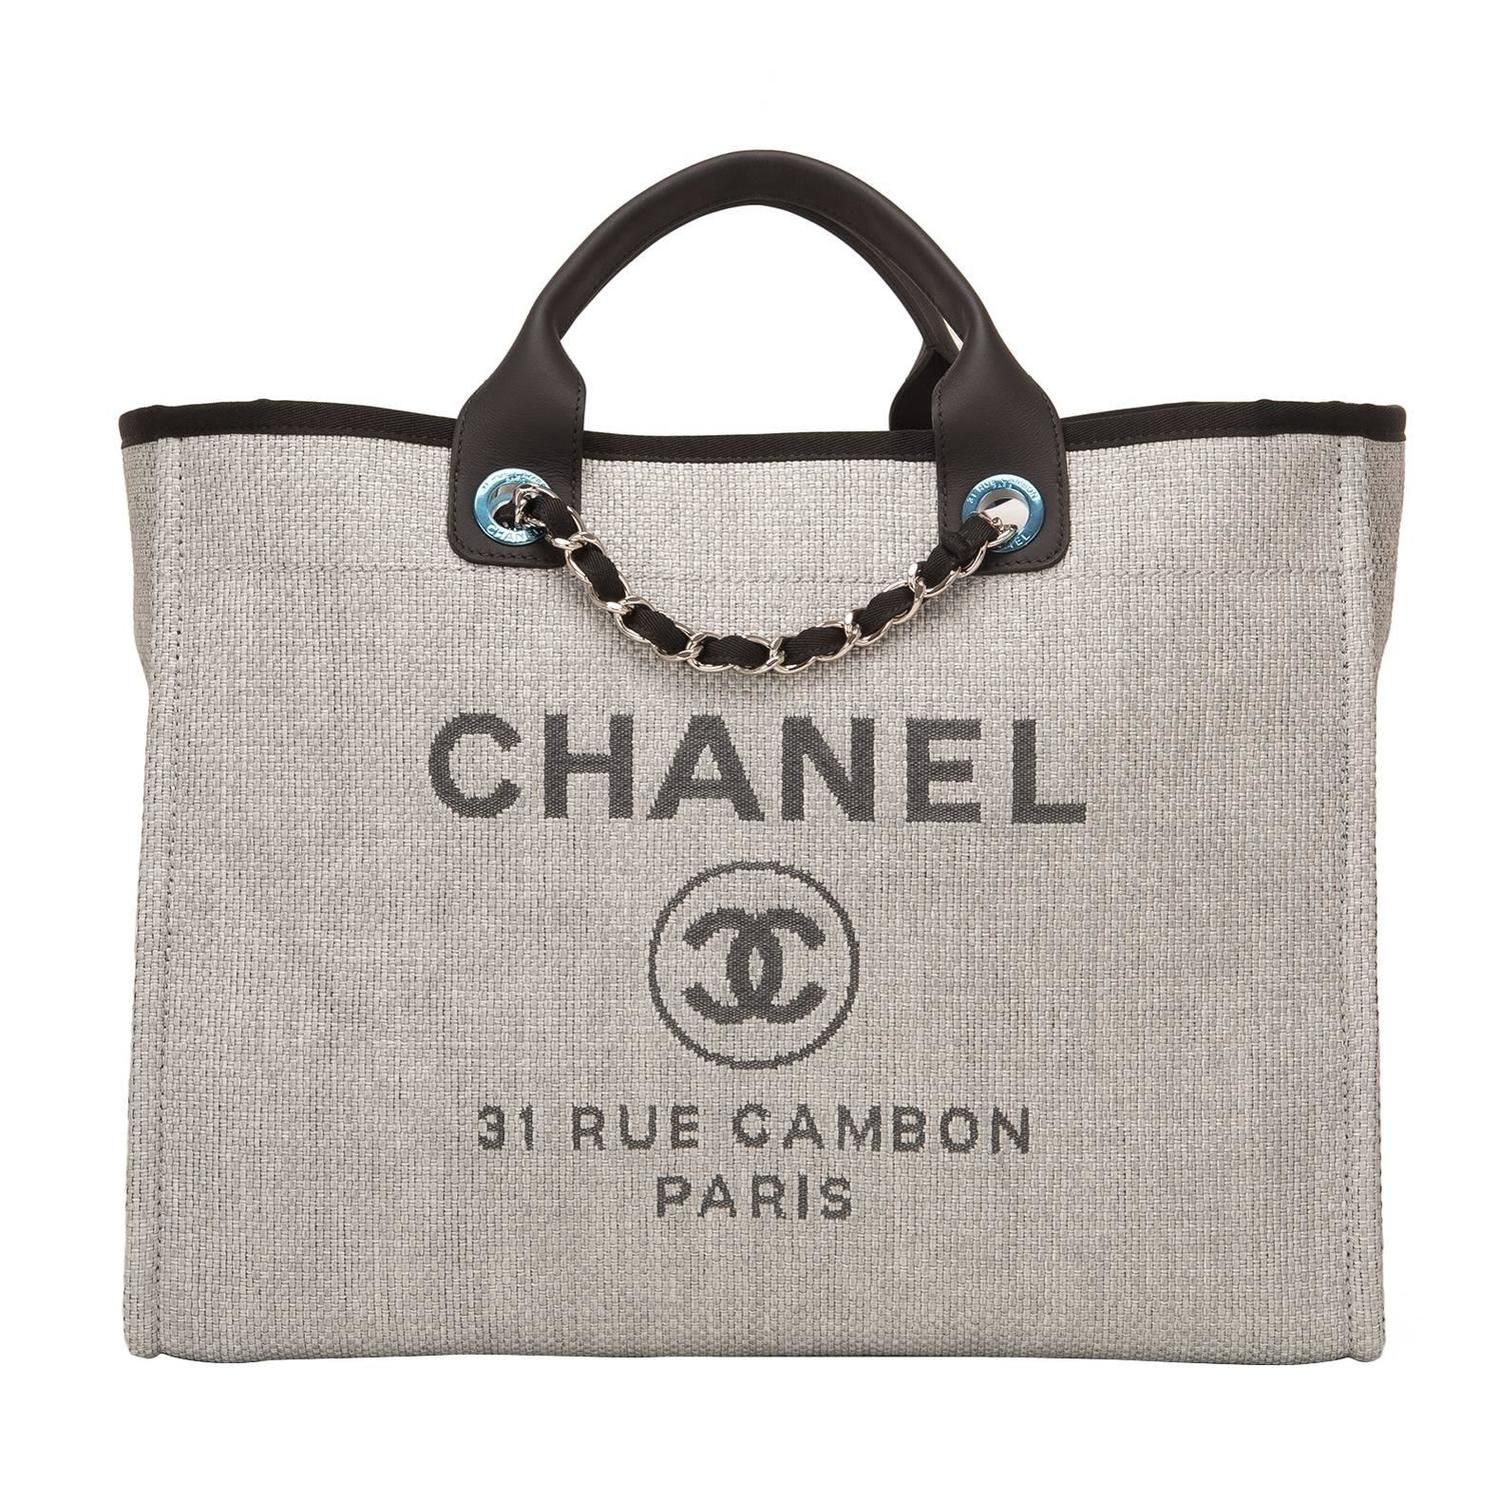 9bf9f8568175 Chanel Grey Canvas Large Deauville Shopping Bag | From a collection of rare  vintage tote bags